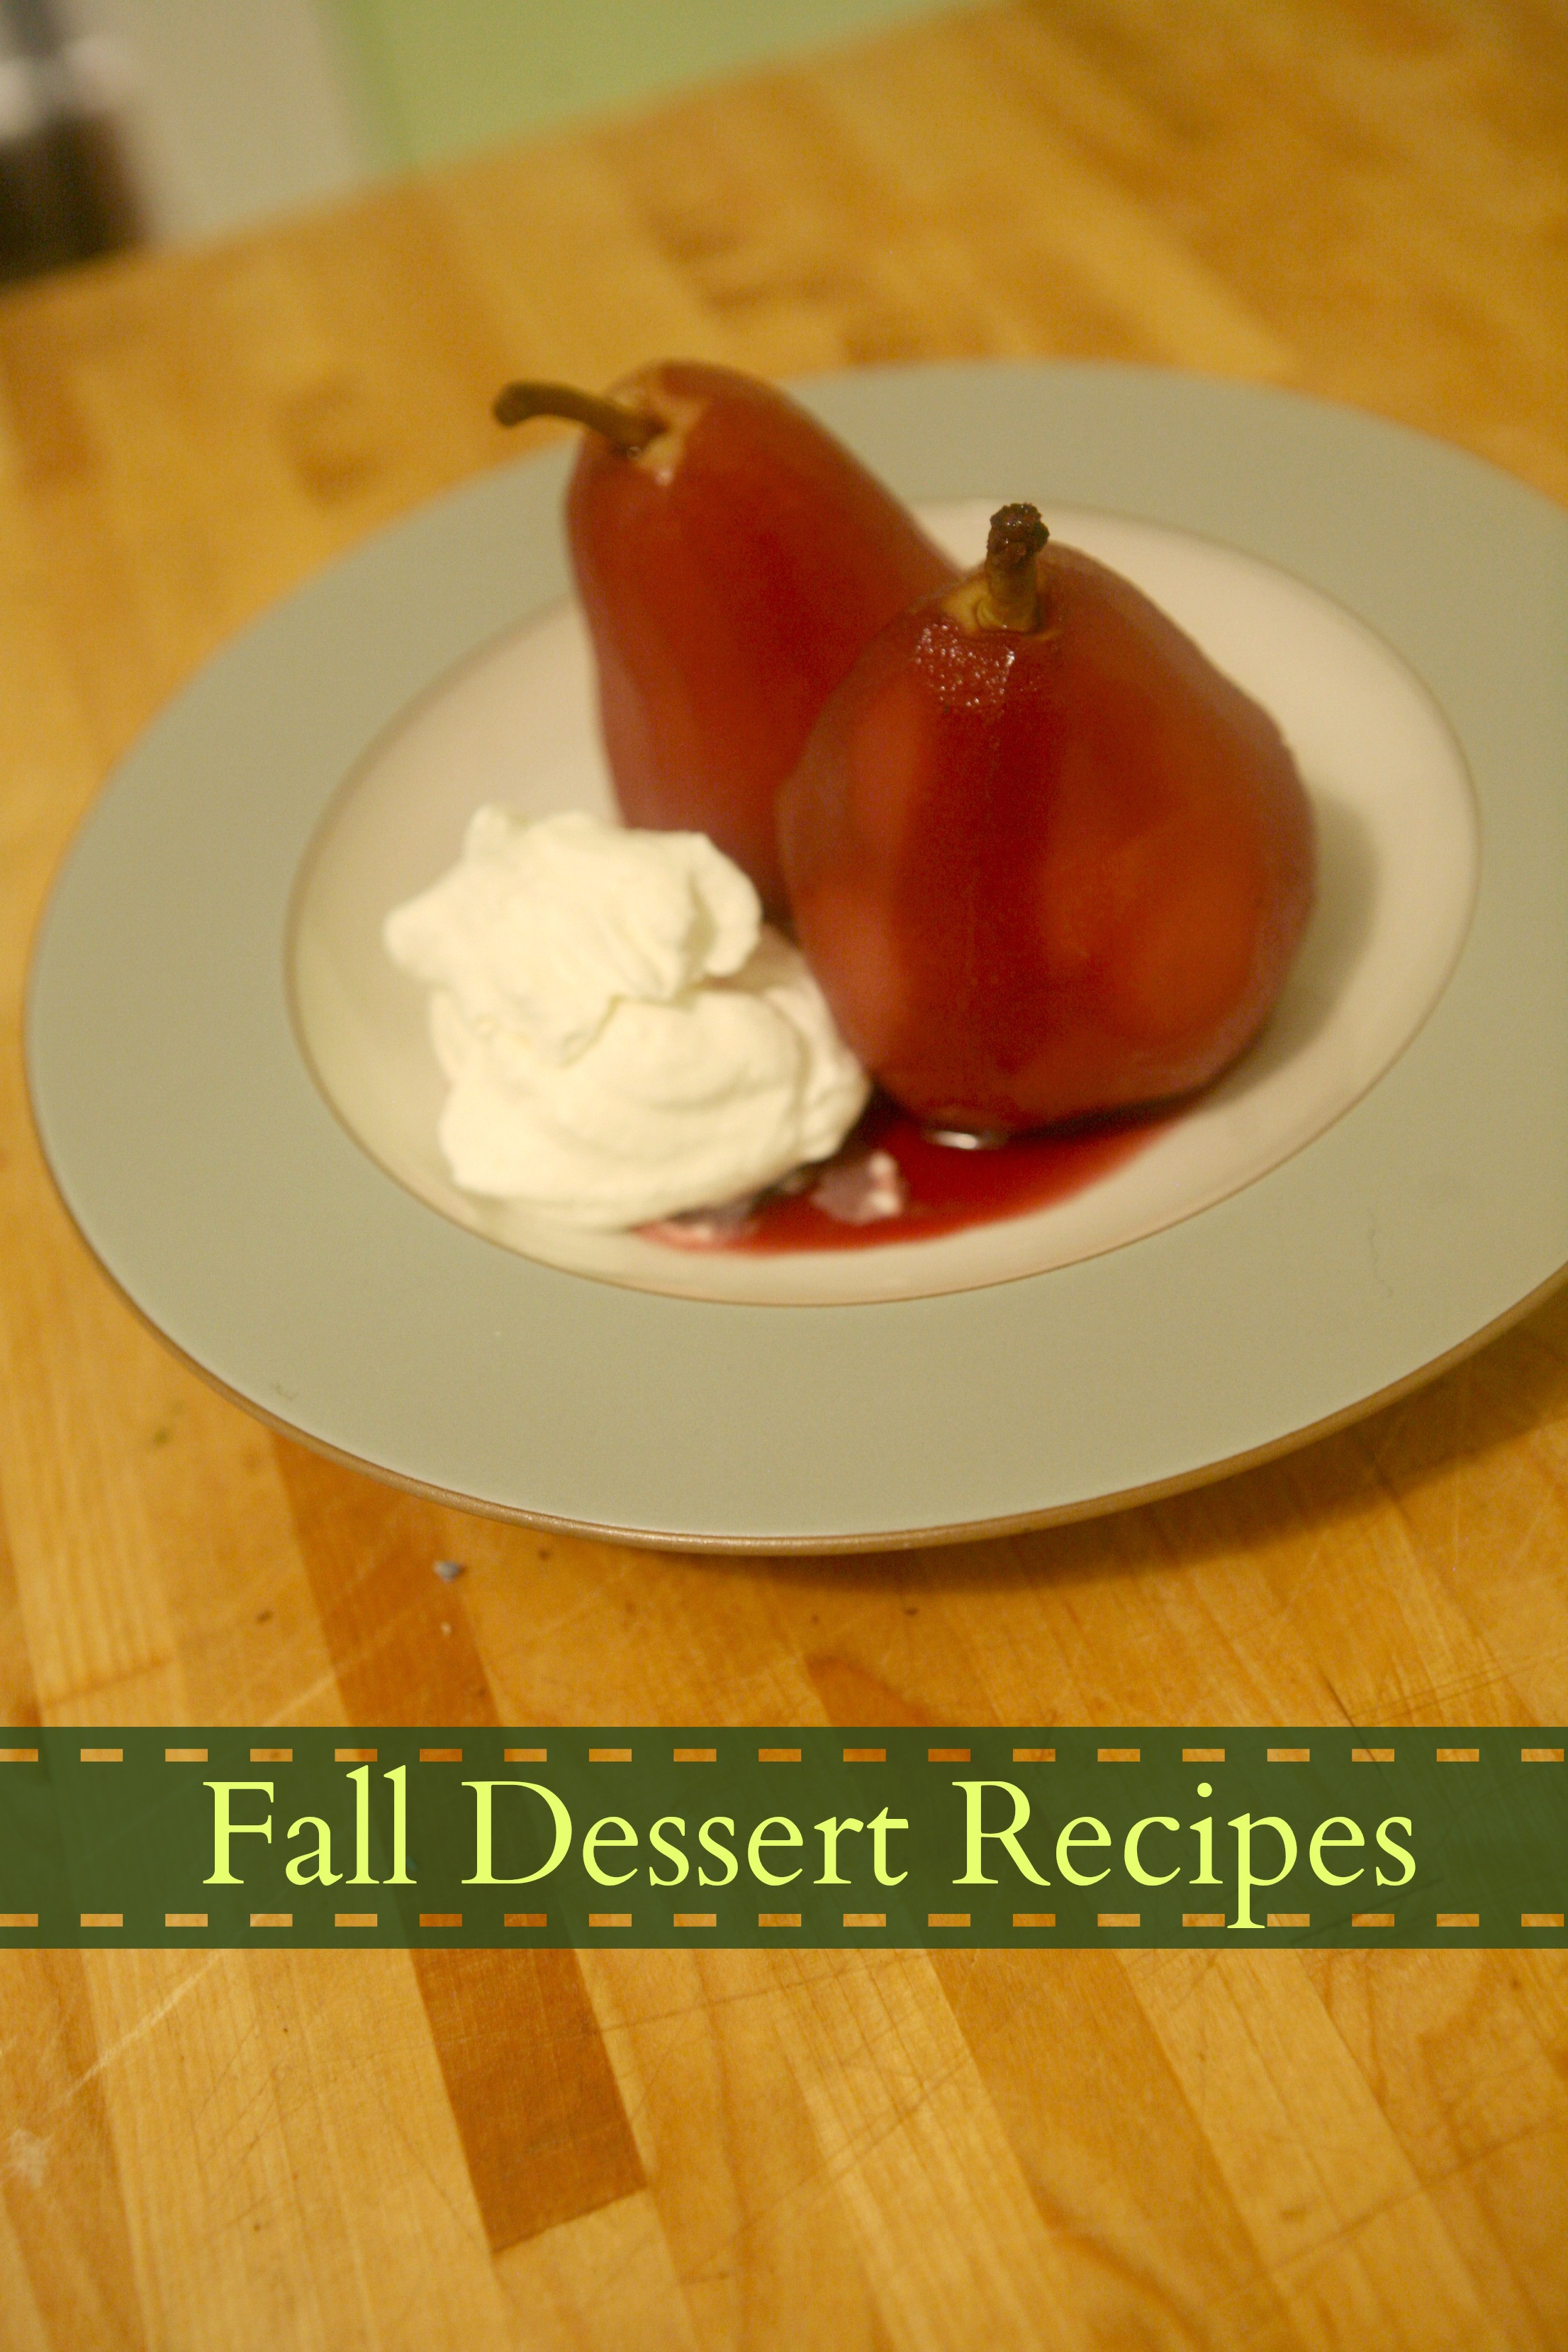 Fall Desserts Recipes  Fall Dessert Recipes Pears poached in red wine Gluten